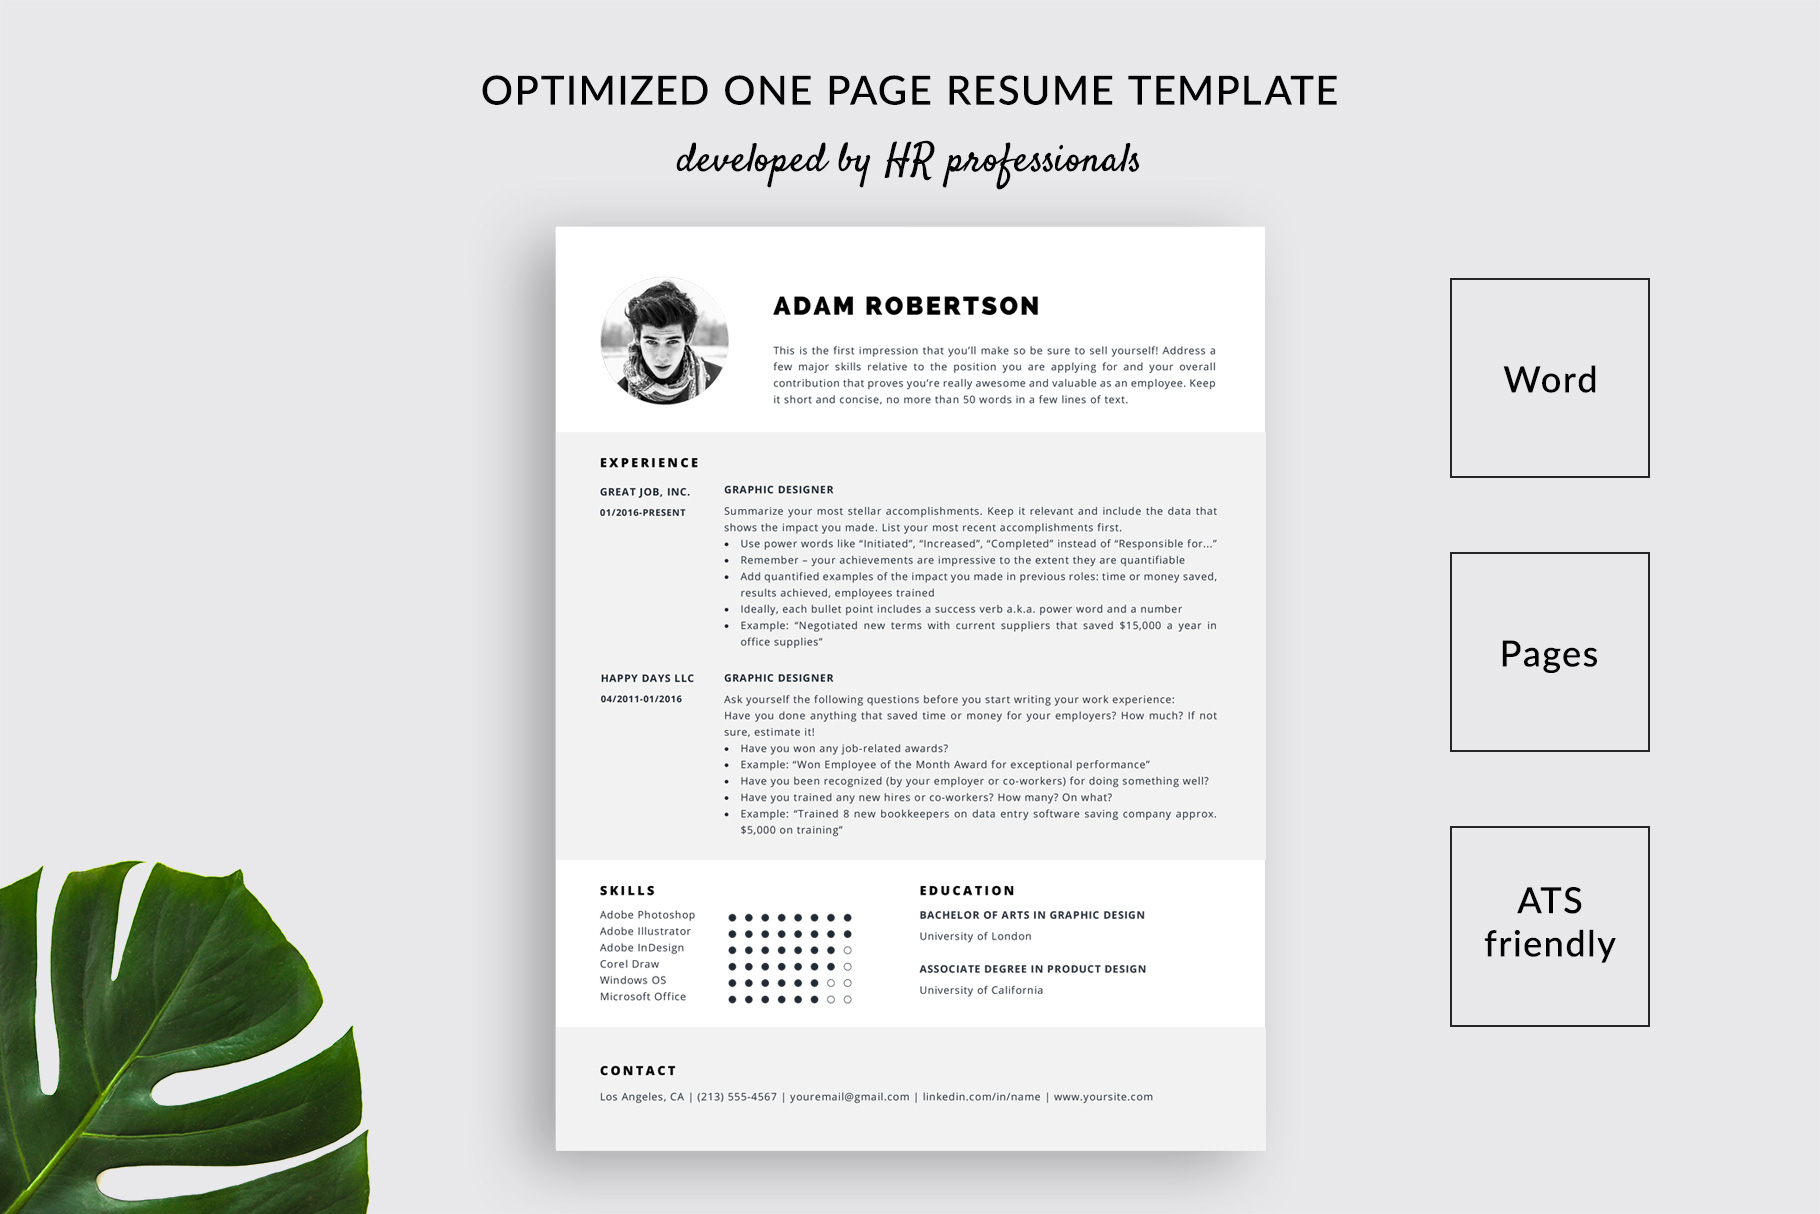 resume template and cover letter adam ats friendly one templatehippo powerpoint software Resume Ats Friendly Resume Template